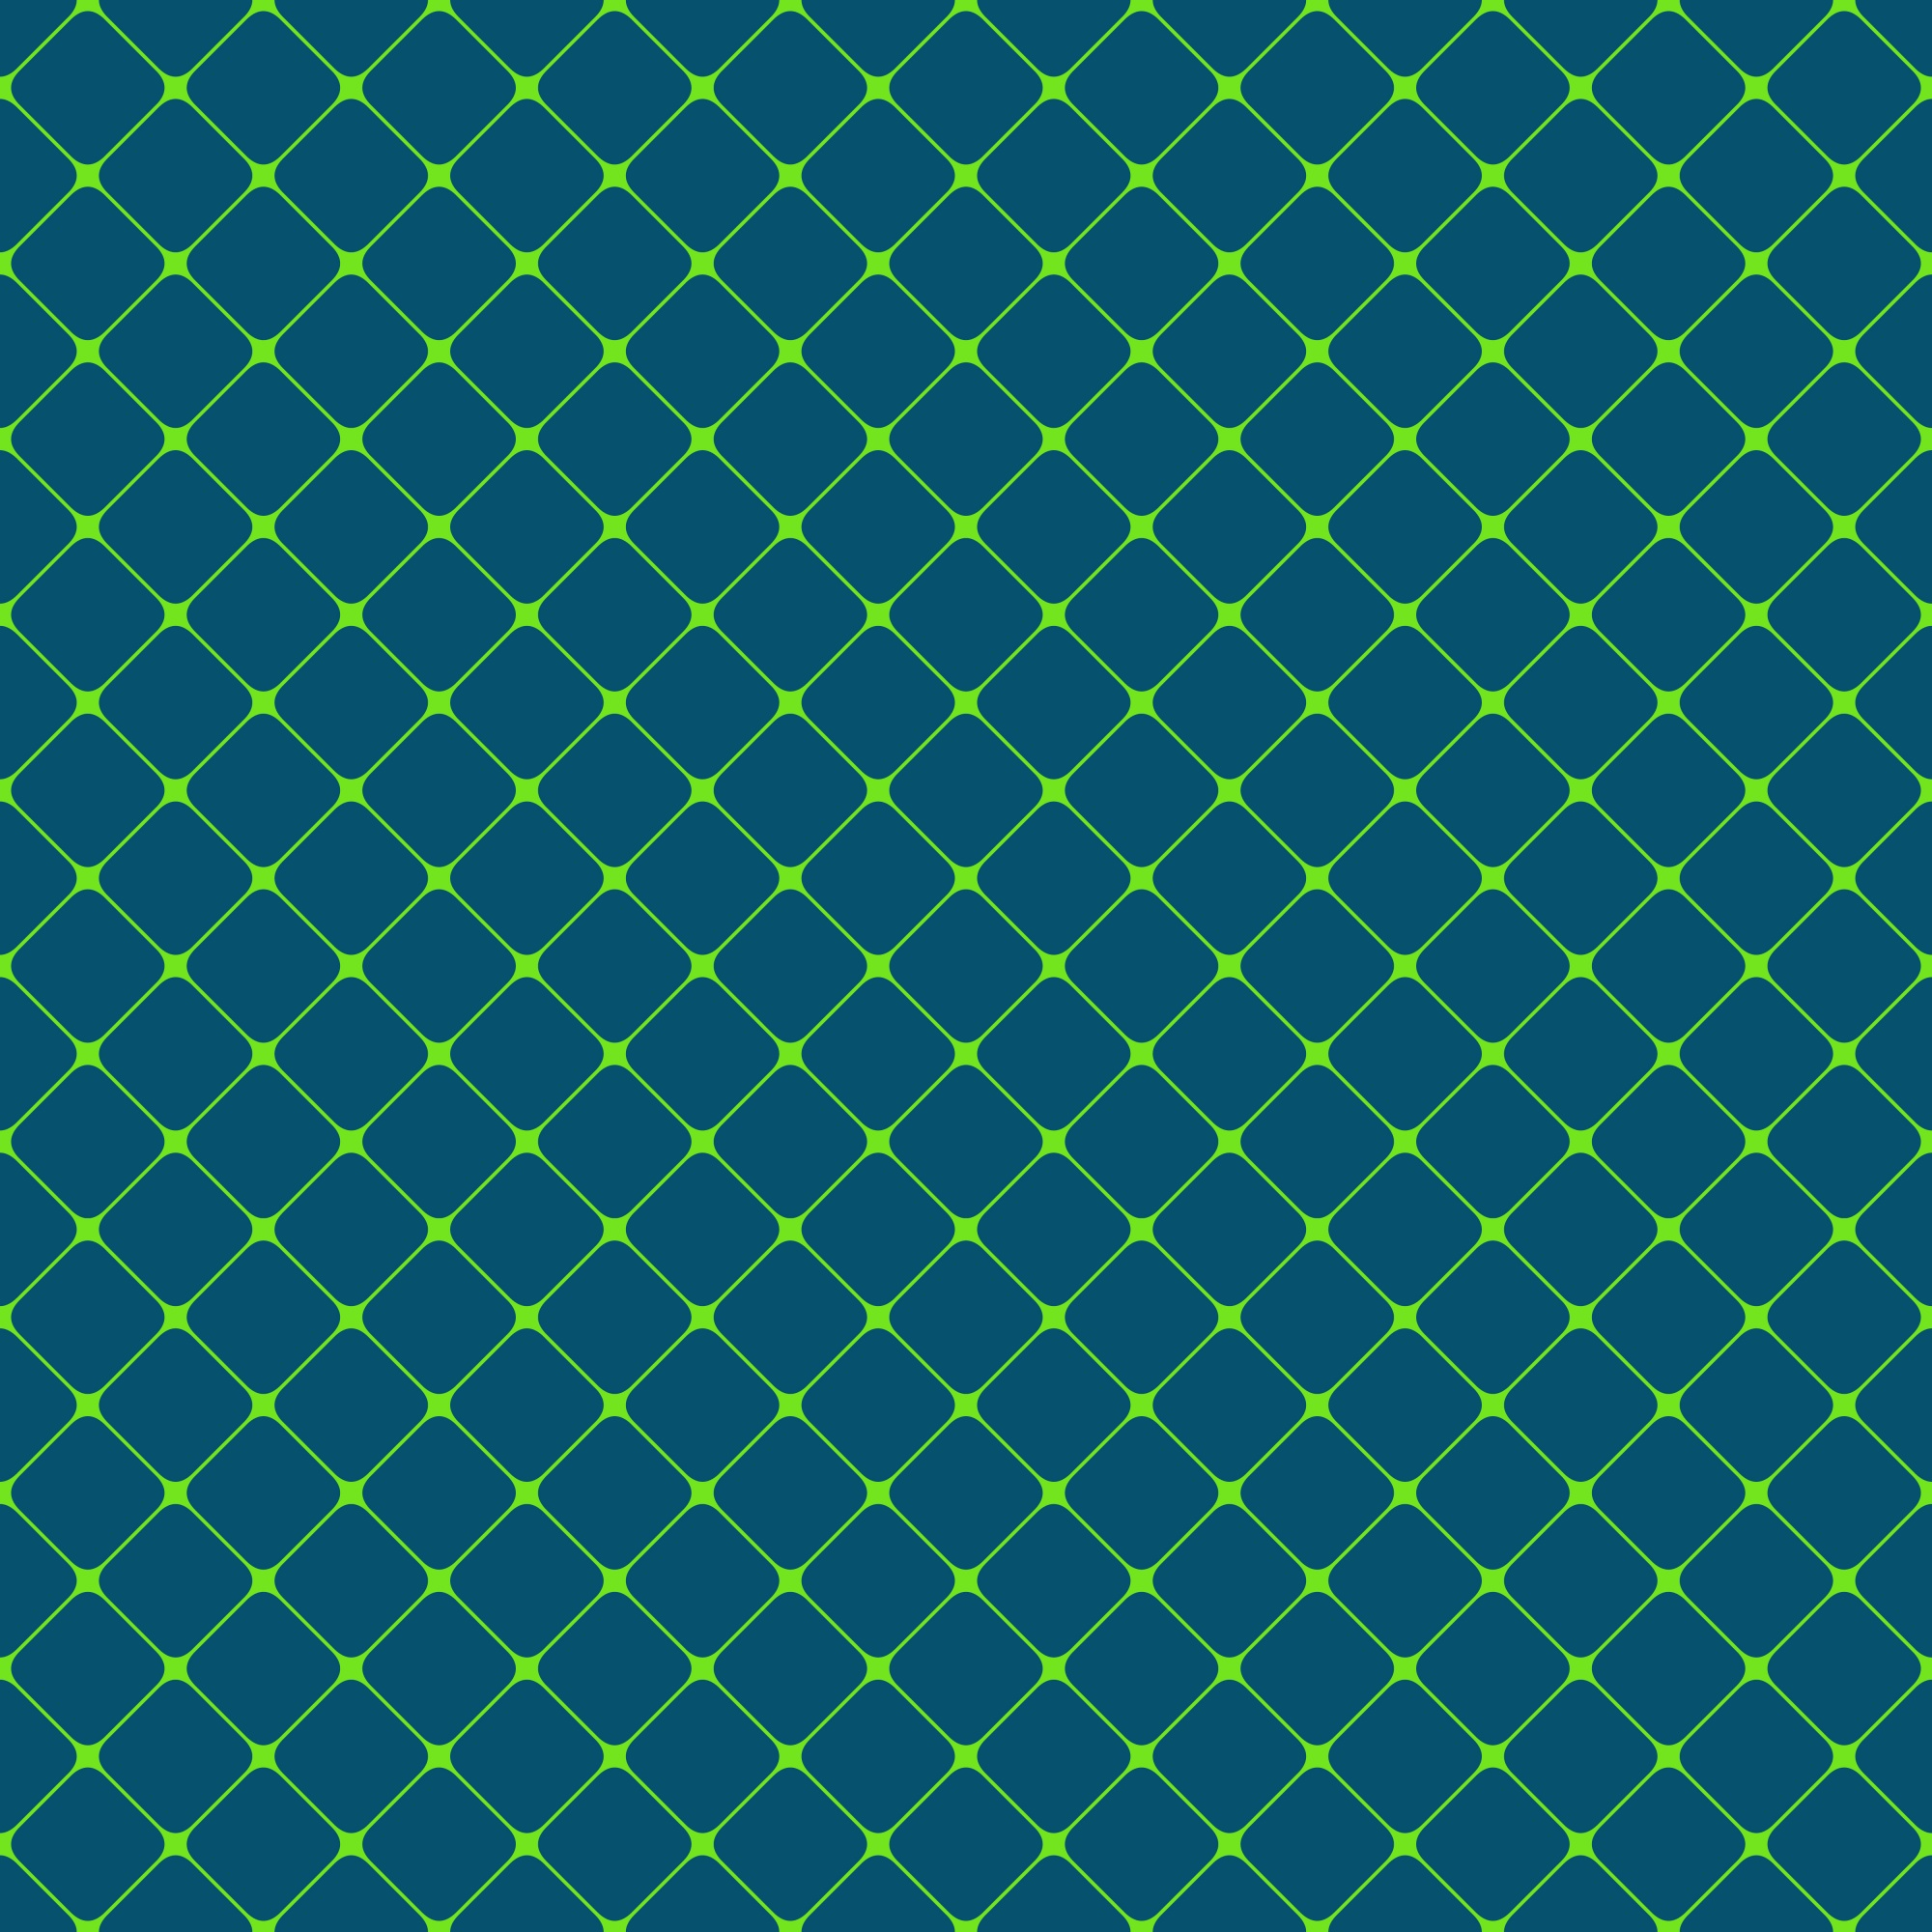 Seamless rounded square grid pattern background - vector design from diagonal squares